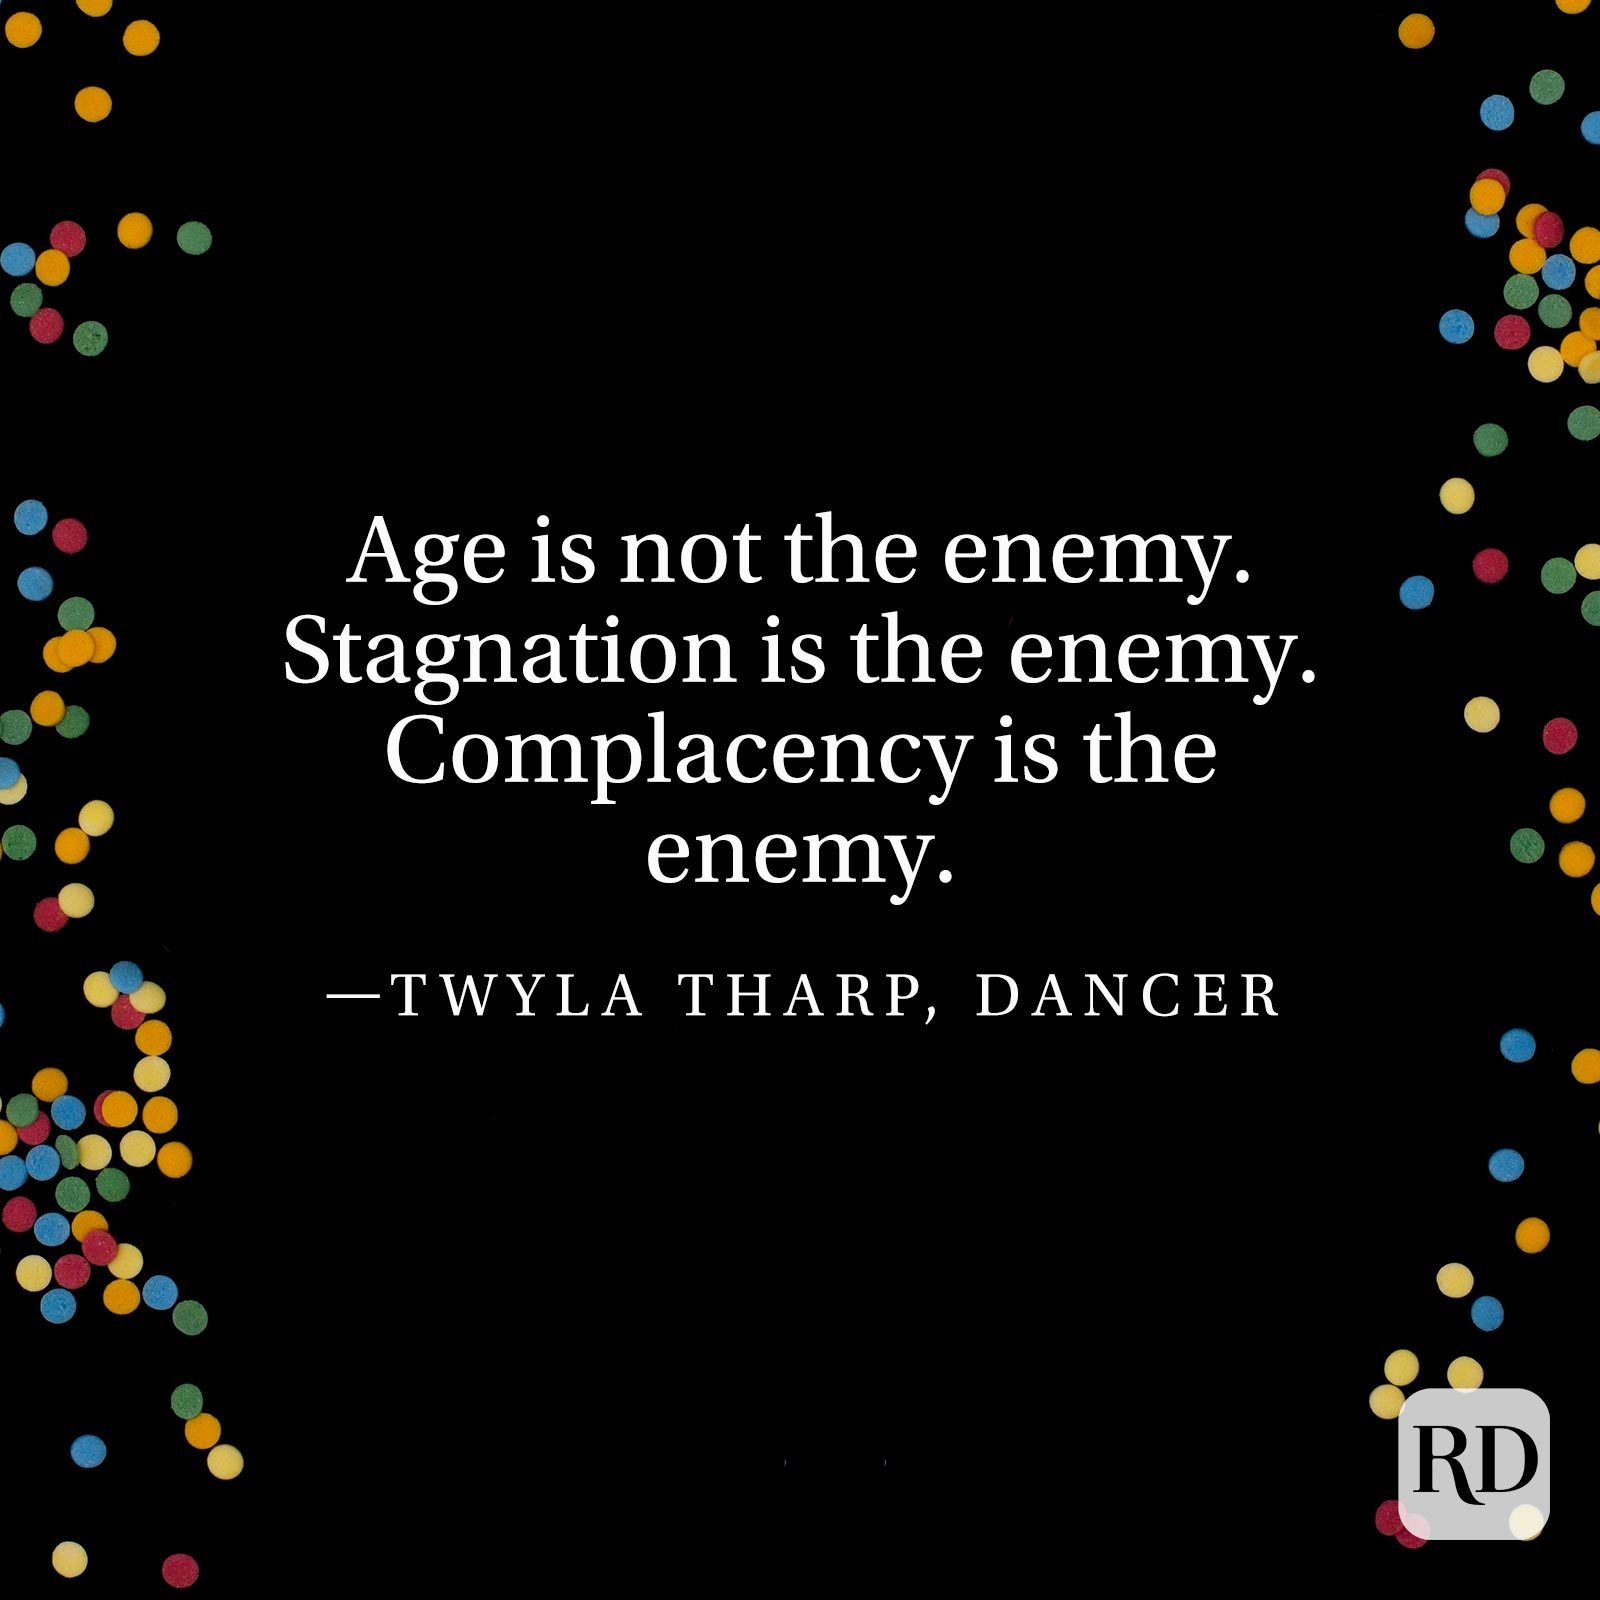 """Age is not the enemy. Stagnation is the enemy. Complacency is the enemy."" —Twyla Tharp, dancer."